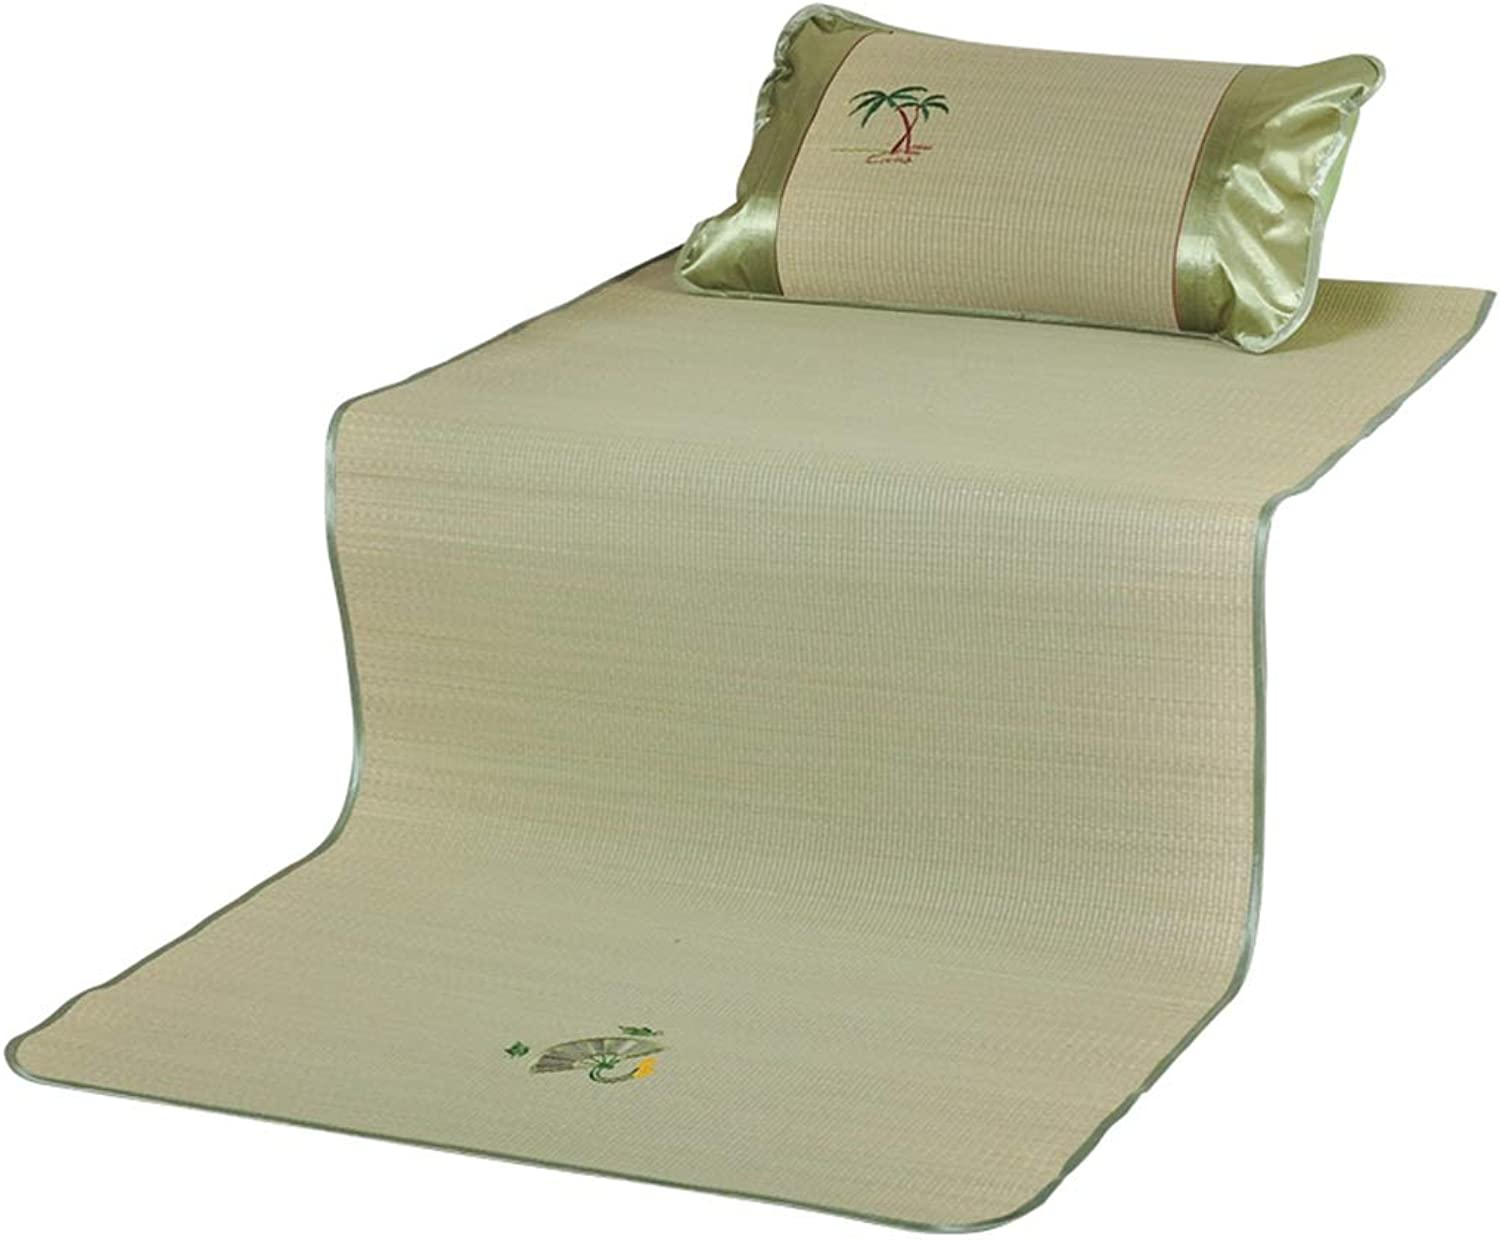 Grass Mat Student Dormitory 90×190cm Summer Mat Single Bed 0.8m Bed Bedroom Mat 1 Meter Wide (Including Pillowcase) (color   Green, Size   100  190cm)